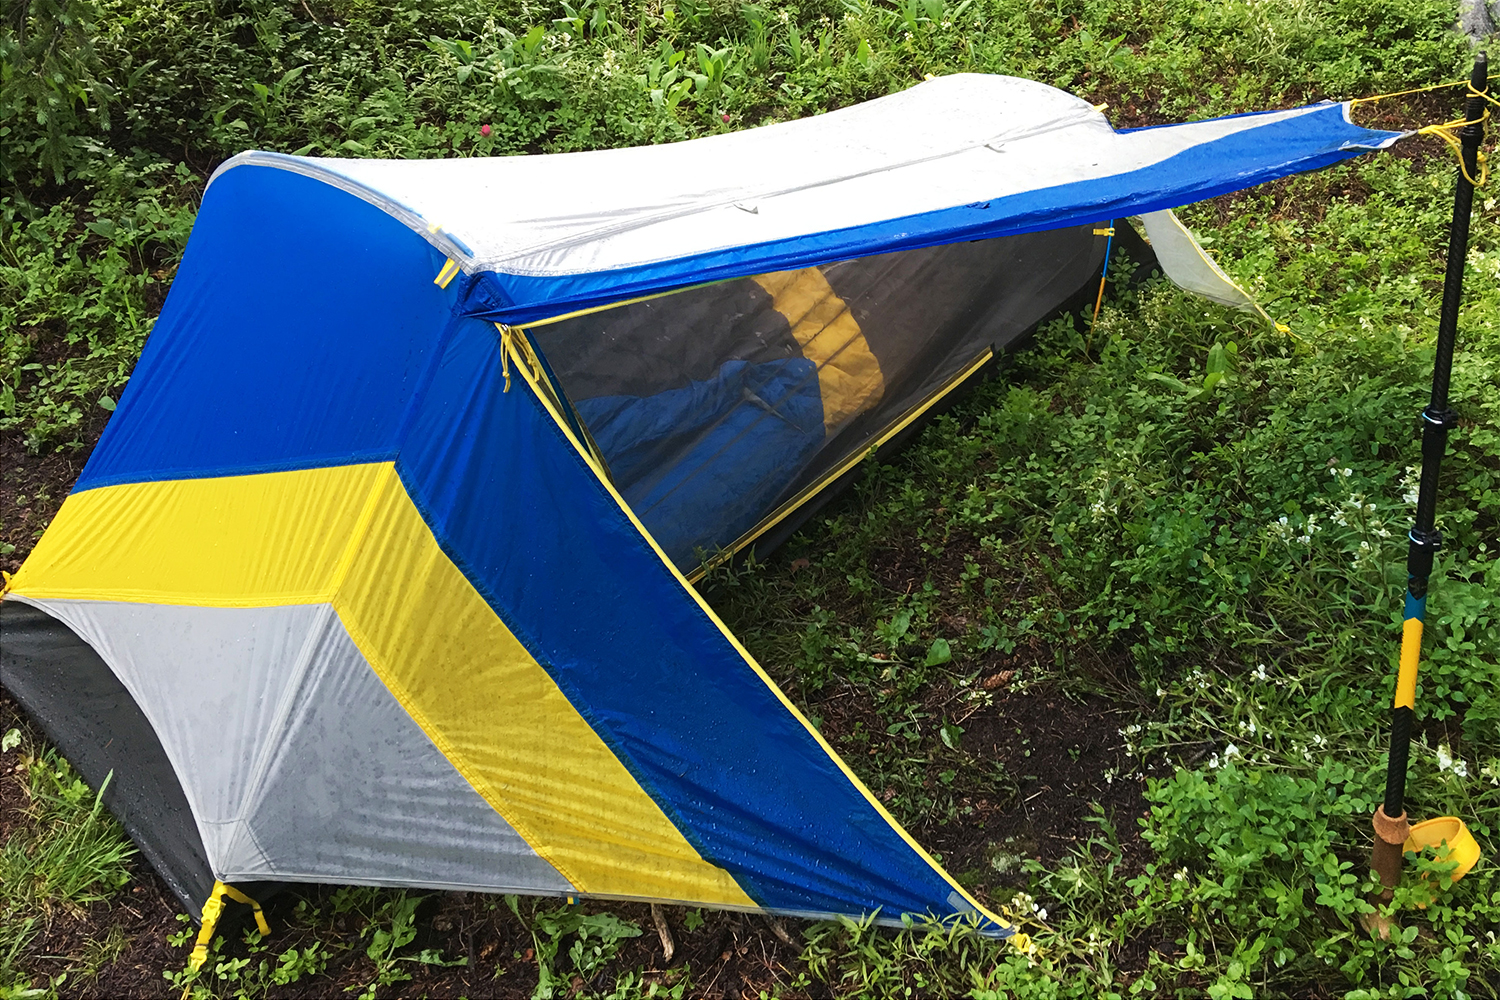 It wonu0027t rival a porch but given the High Sideu0027s internal size it adds welcomed sheltered sitting space for cooking or organizing gear. & Lean-To Shelter: First Look At u0027High Sideu0027 Tent